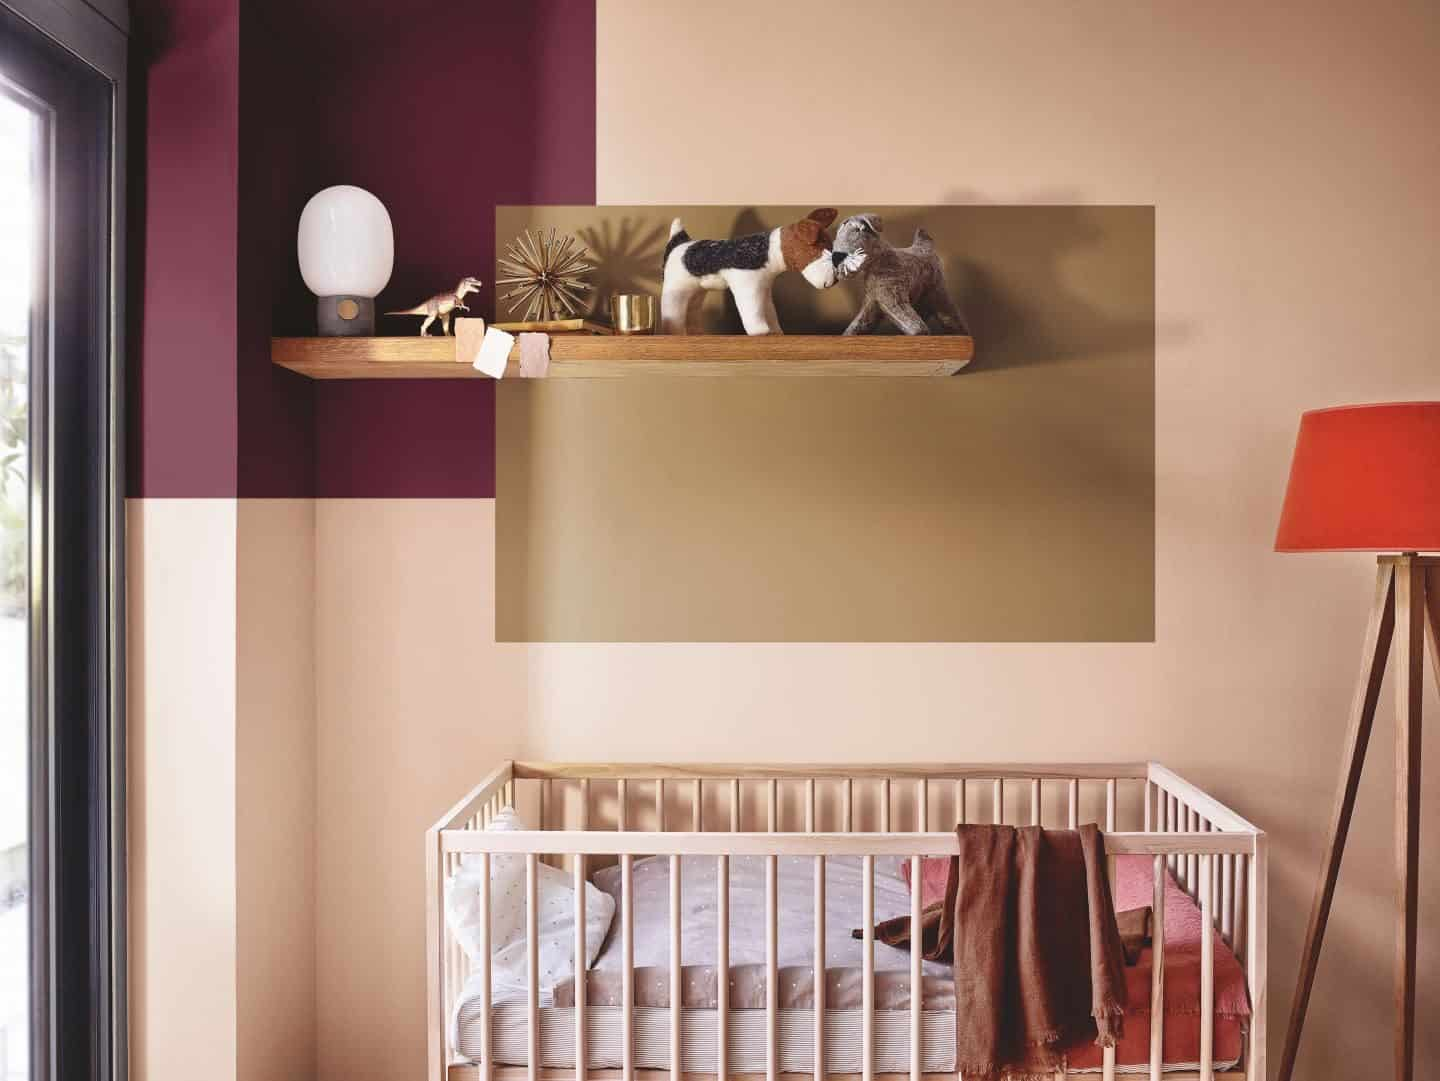 Dulux Colour of the Year 2019 - Spiced Honey (7)